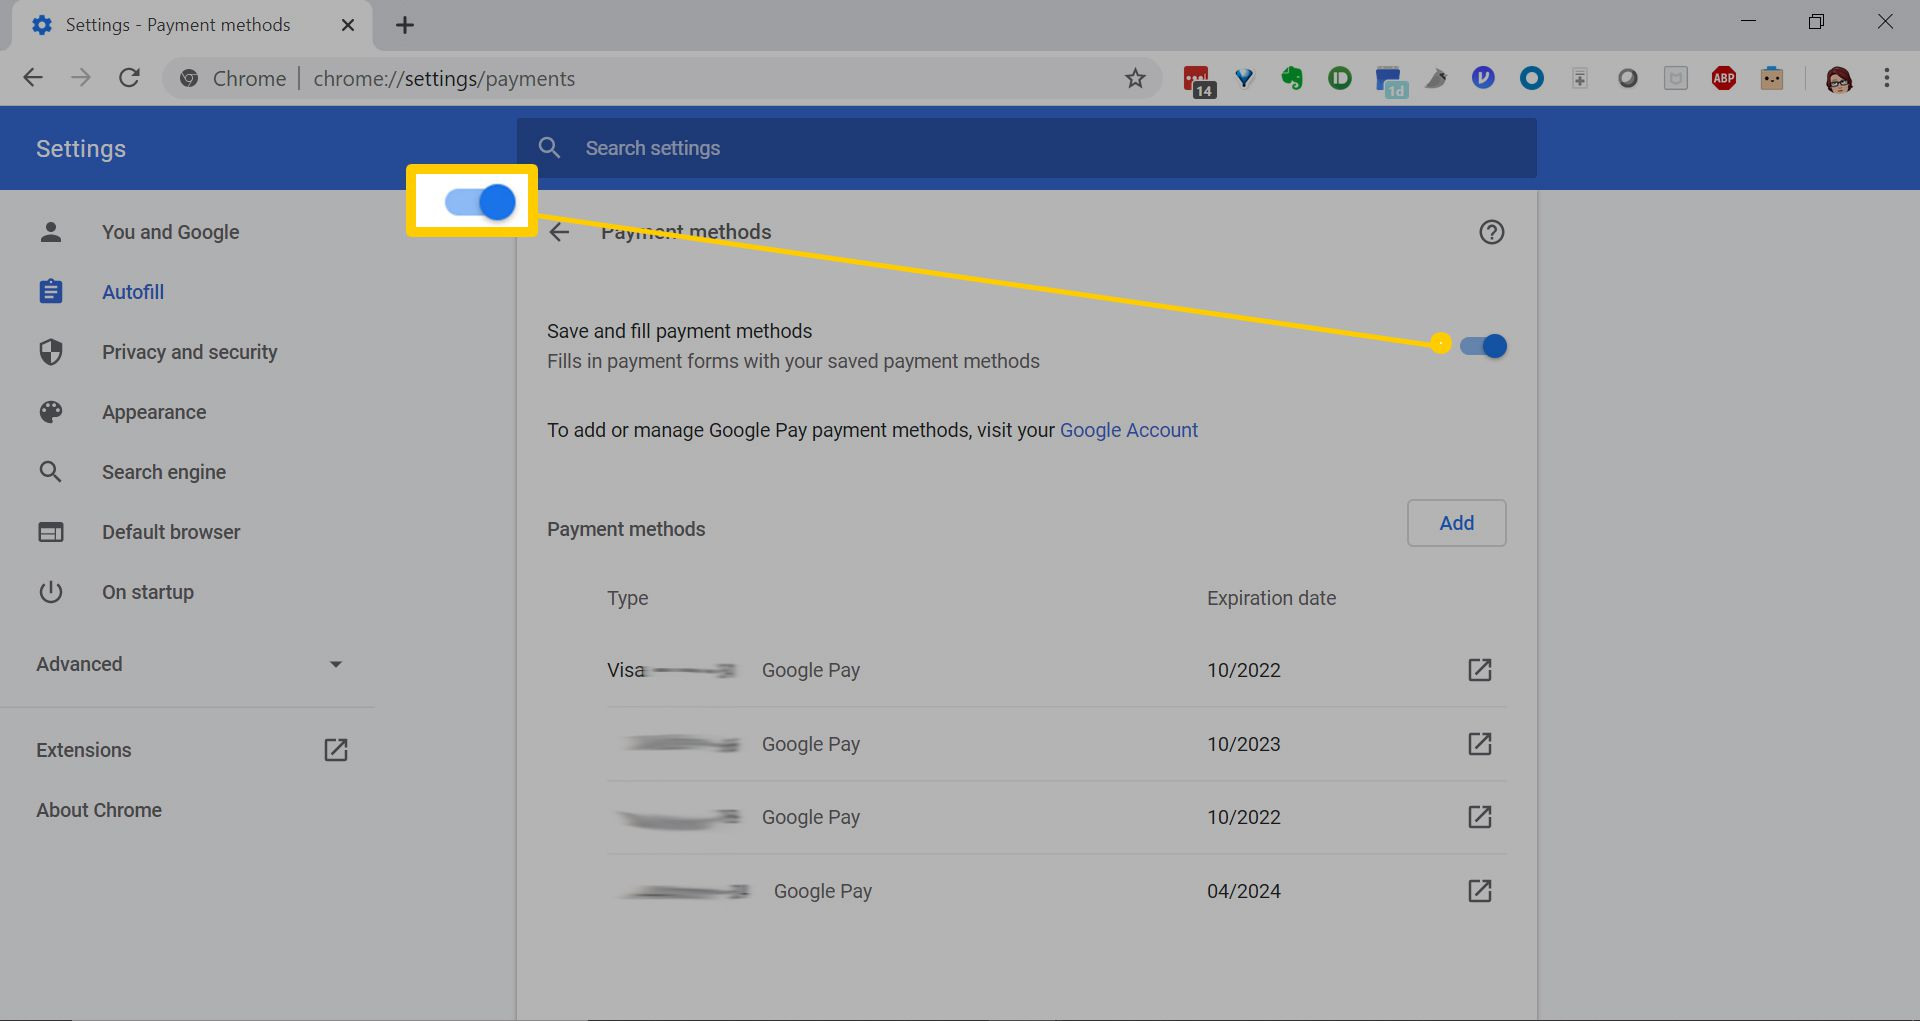 How to Manage Chrome Autofill Settings